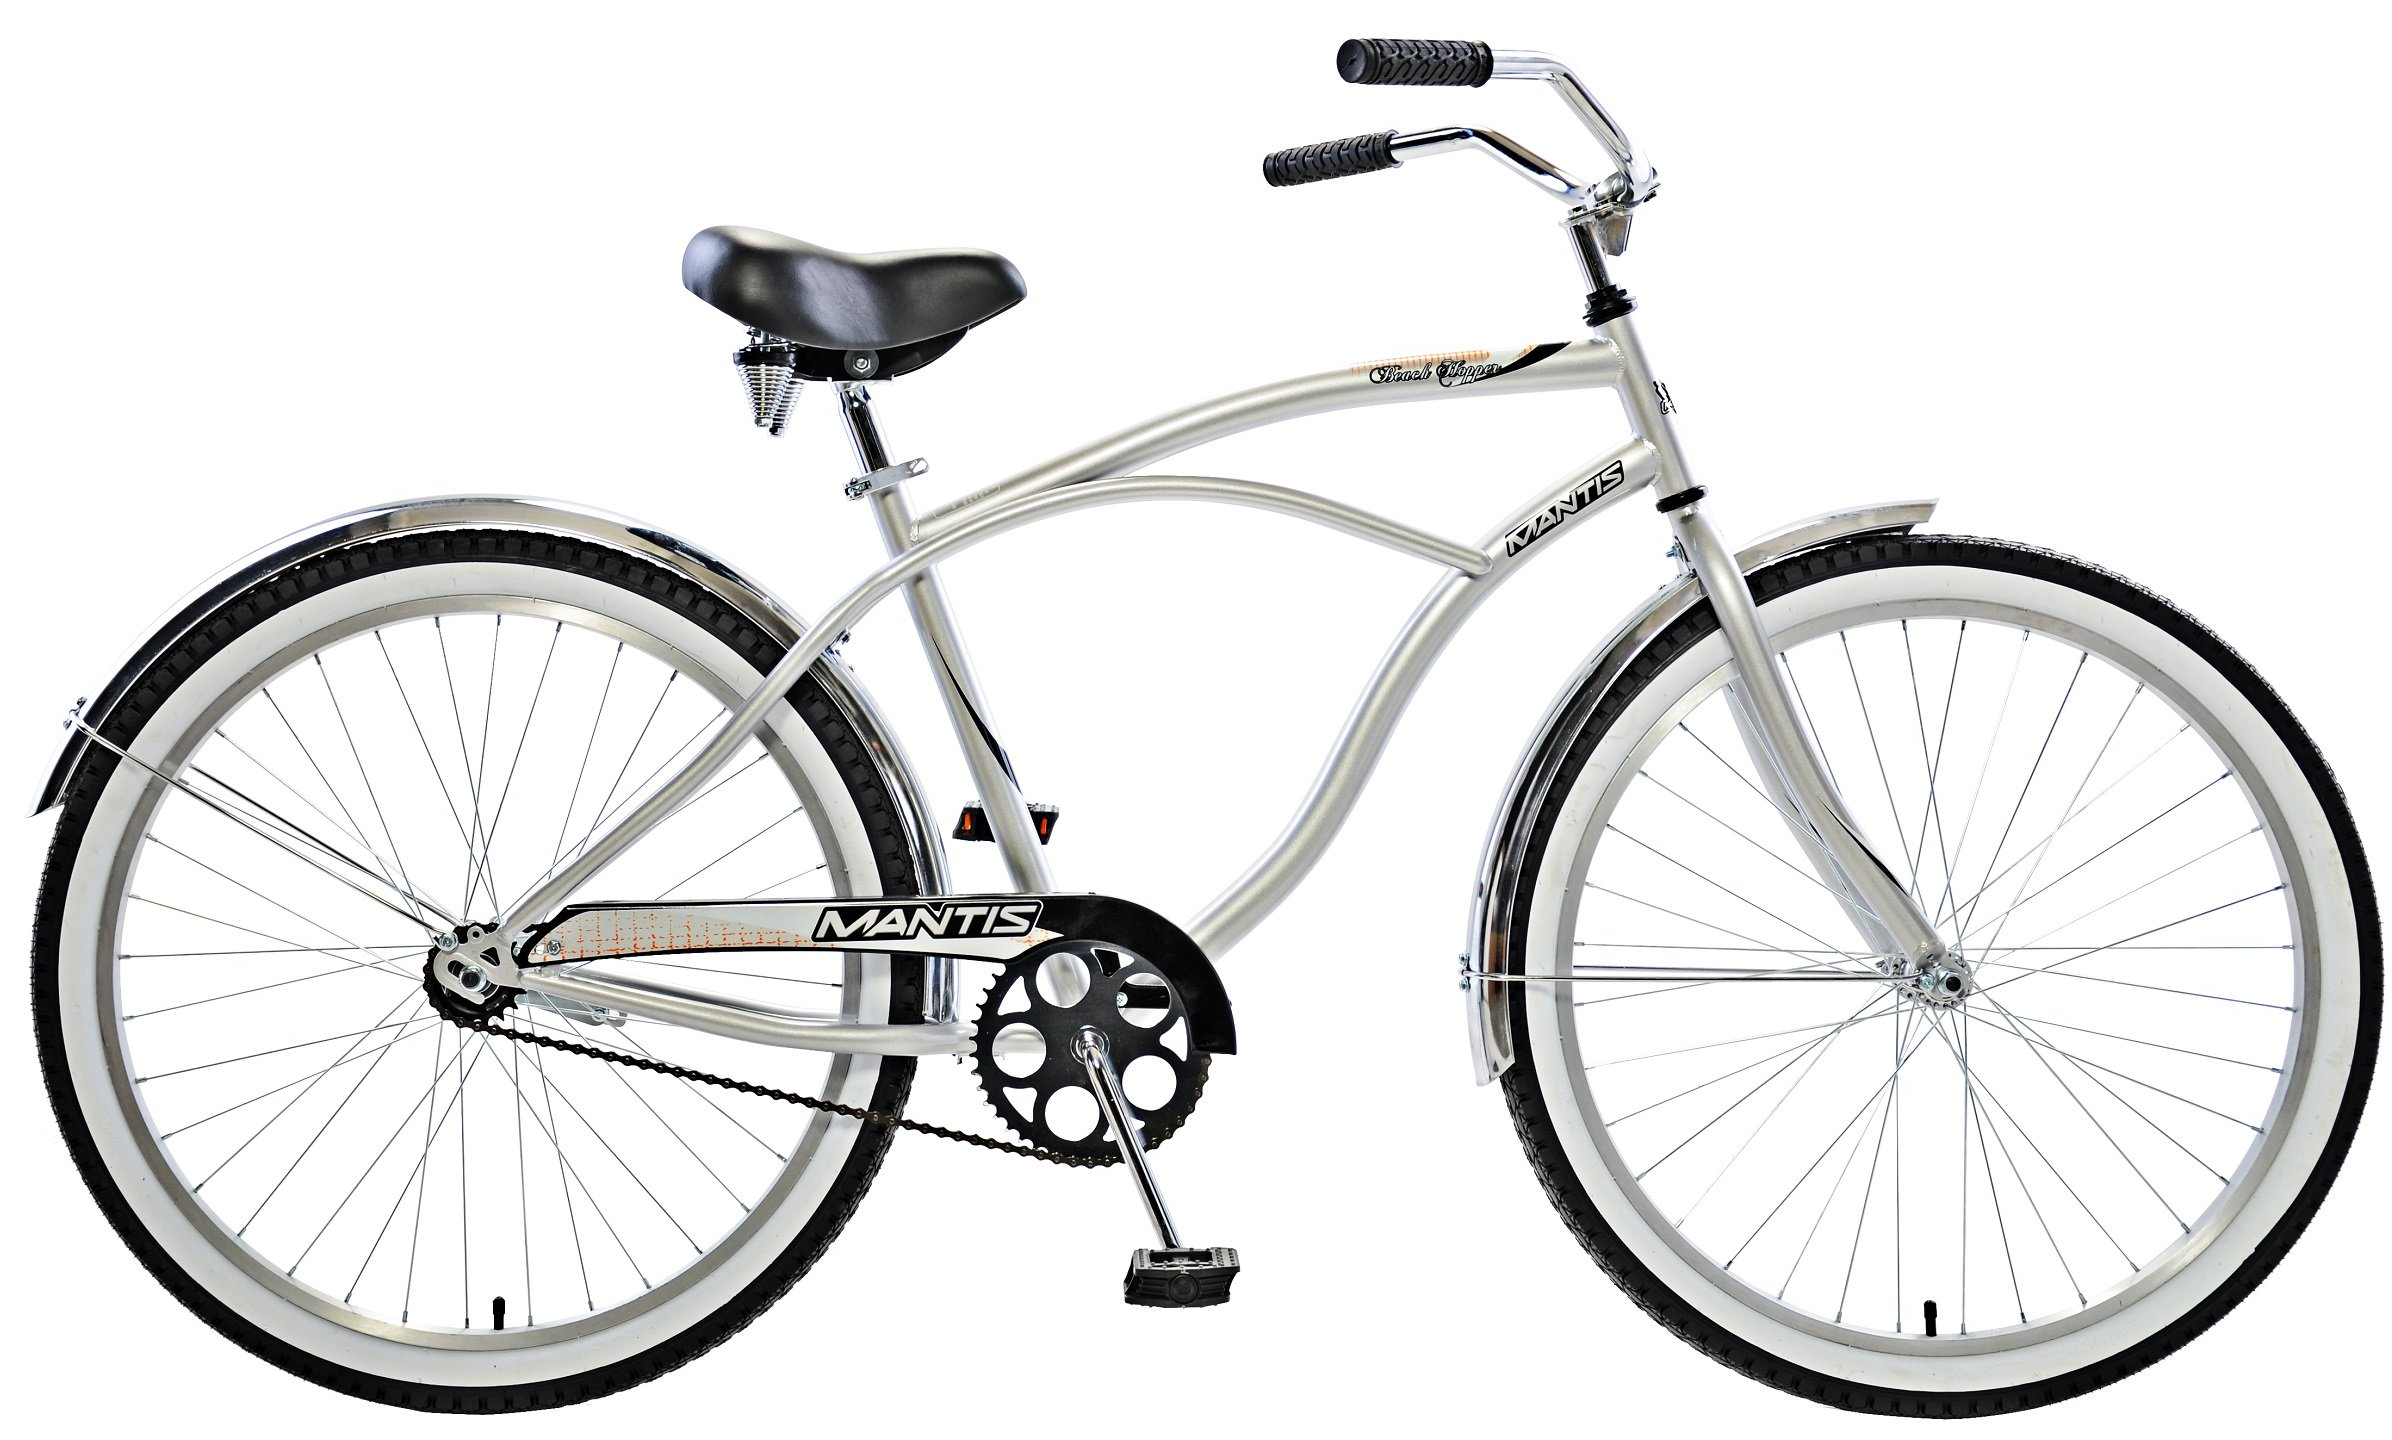 Mantis Mens Beach Hopper Cruiser Bicycle